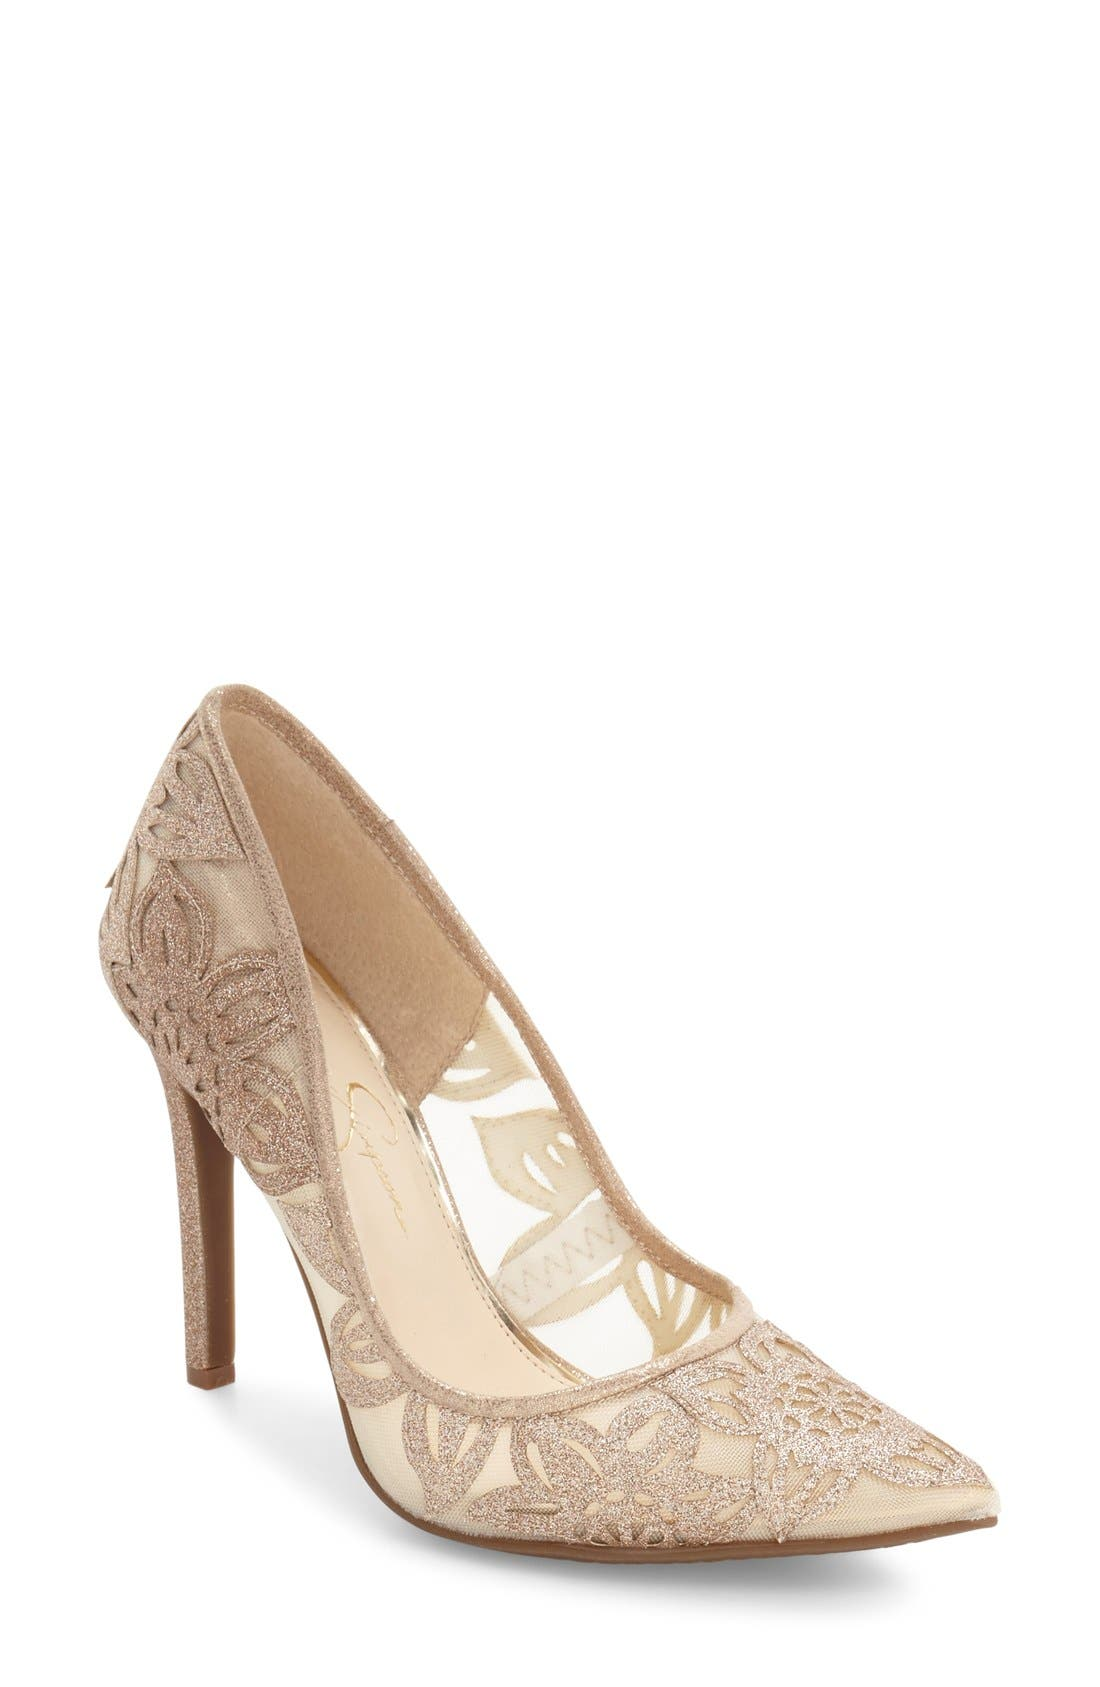 JESSICA SIMPSON Charese Pointy Toe Pump